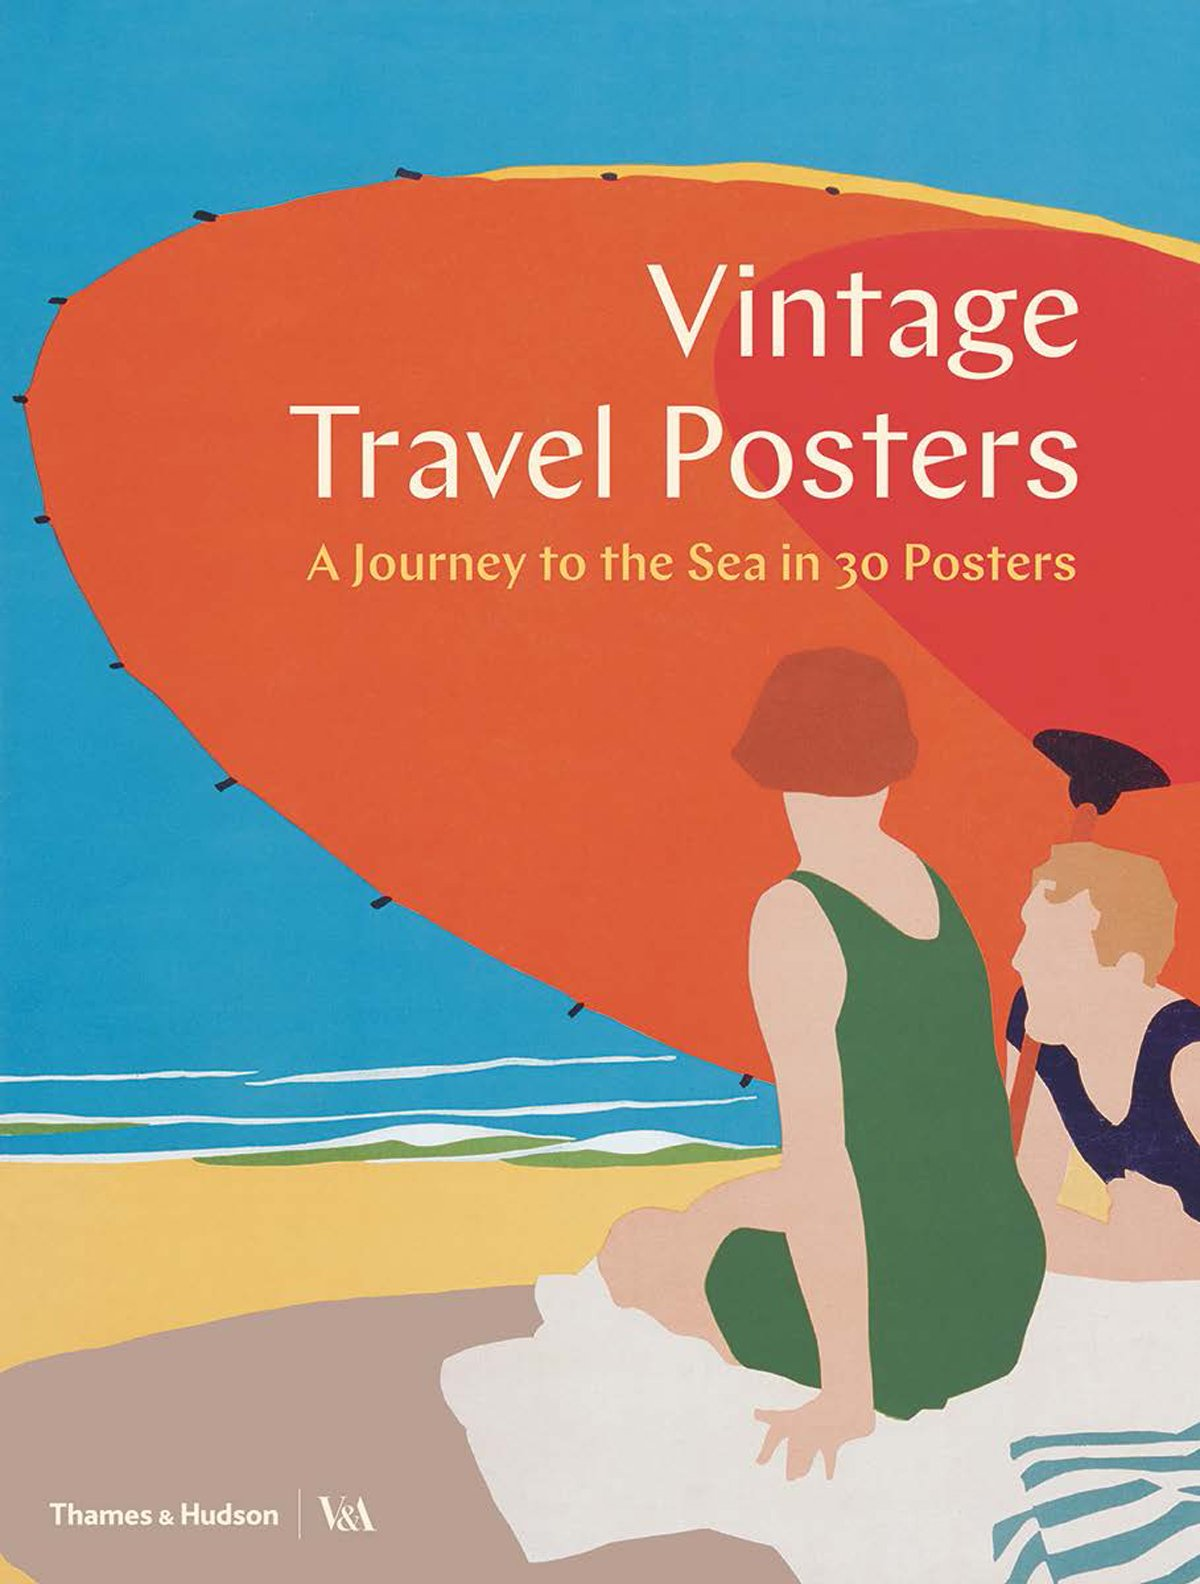 Vintage Travel Posters: A Journey to the Sea in 30 Posters